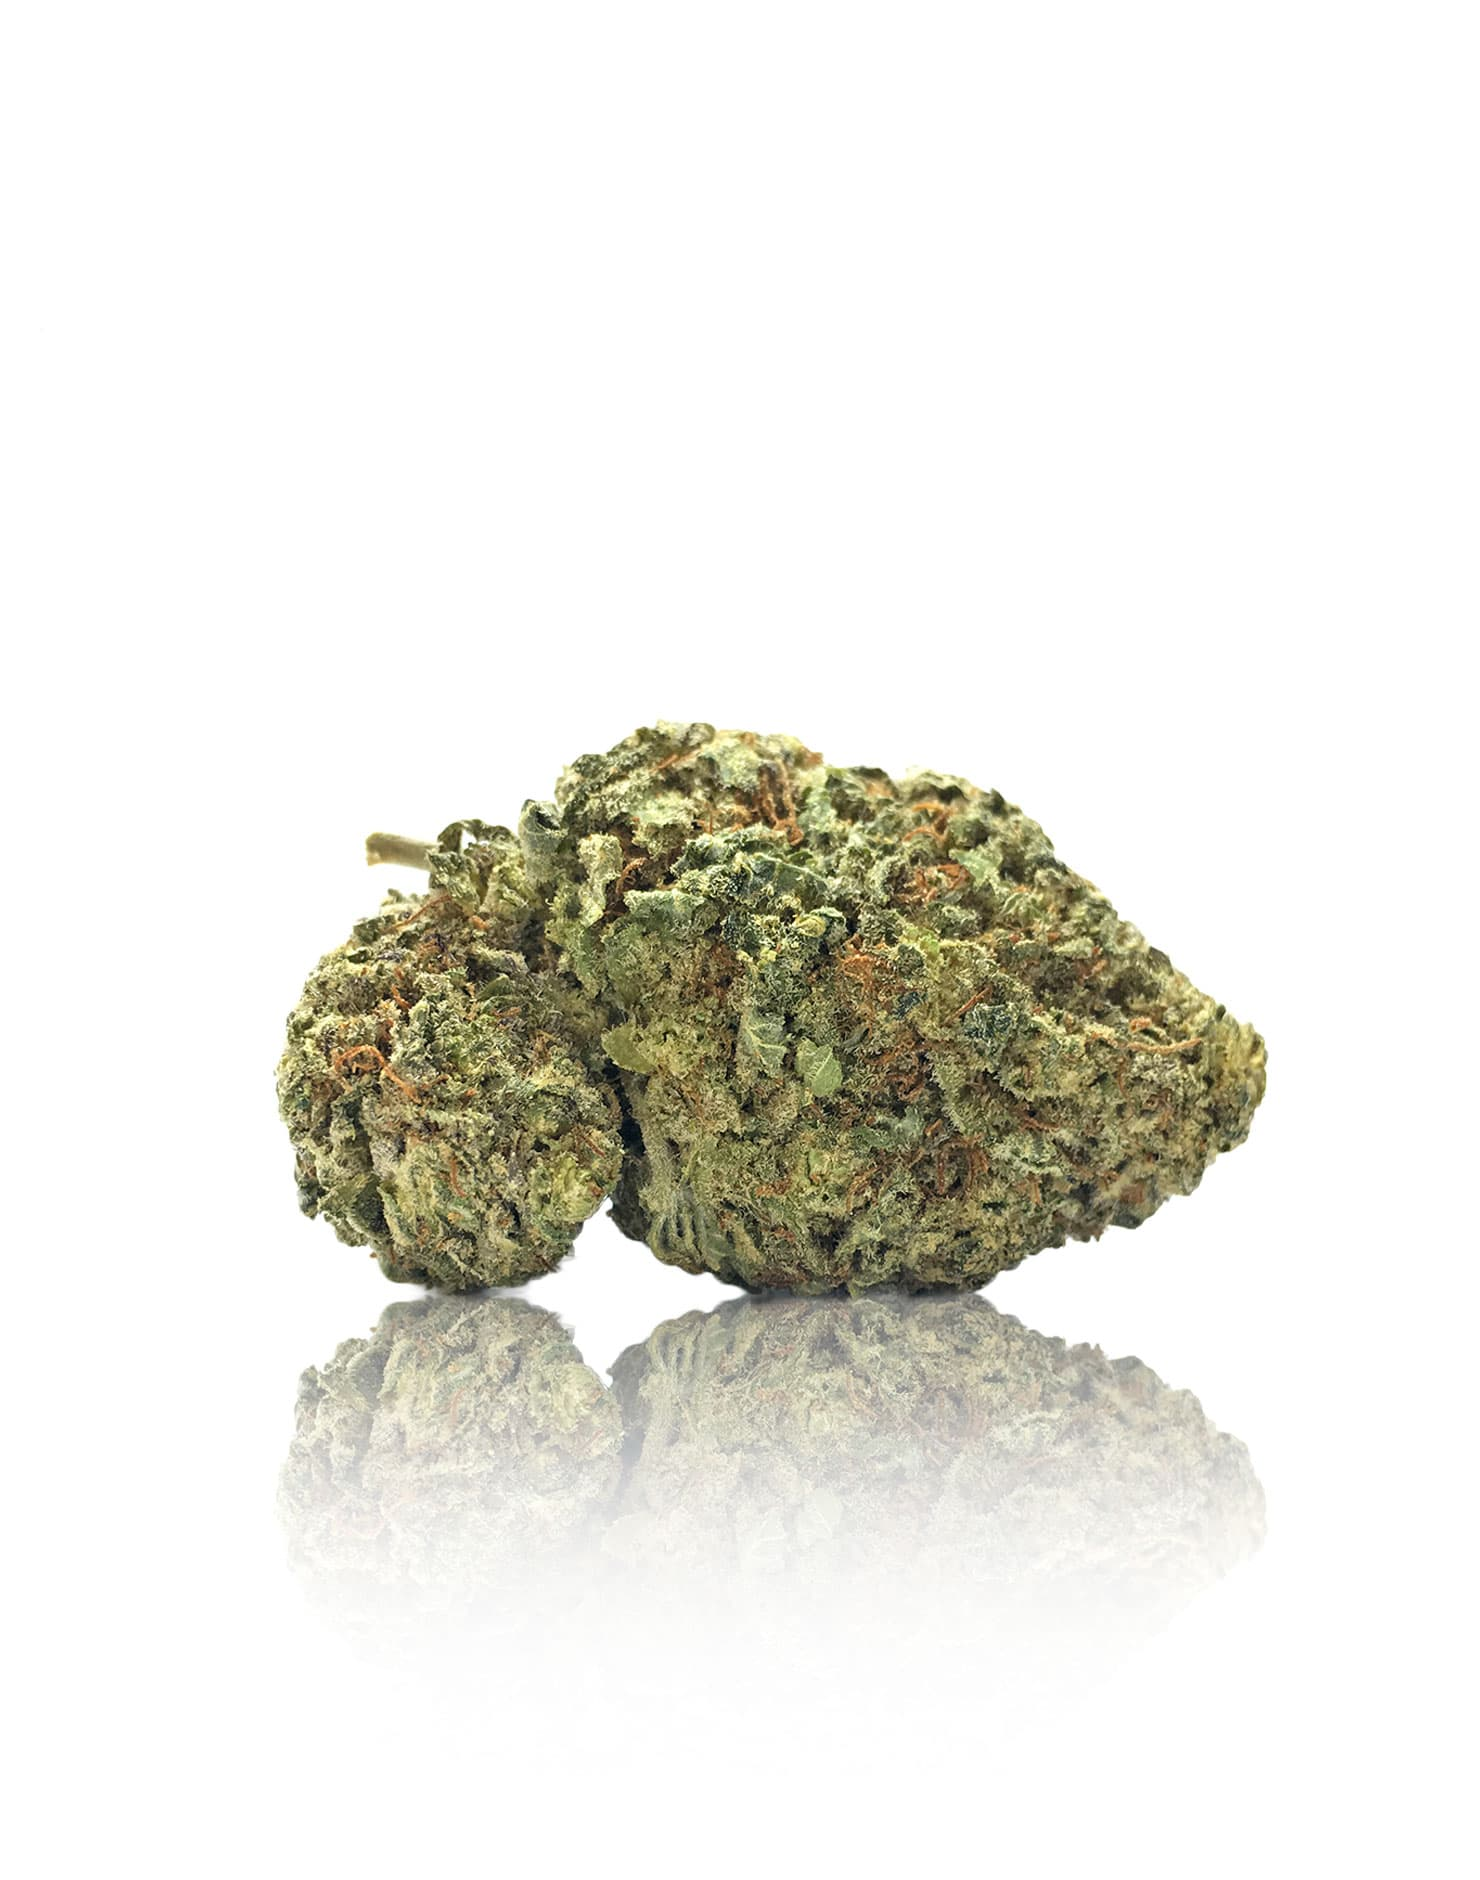 (AAA) Blackberry Kush by Ganja Grams - Image © 2020 Ganja Grams. All Rights Reserved.